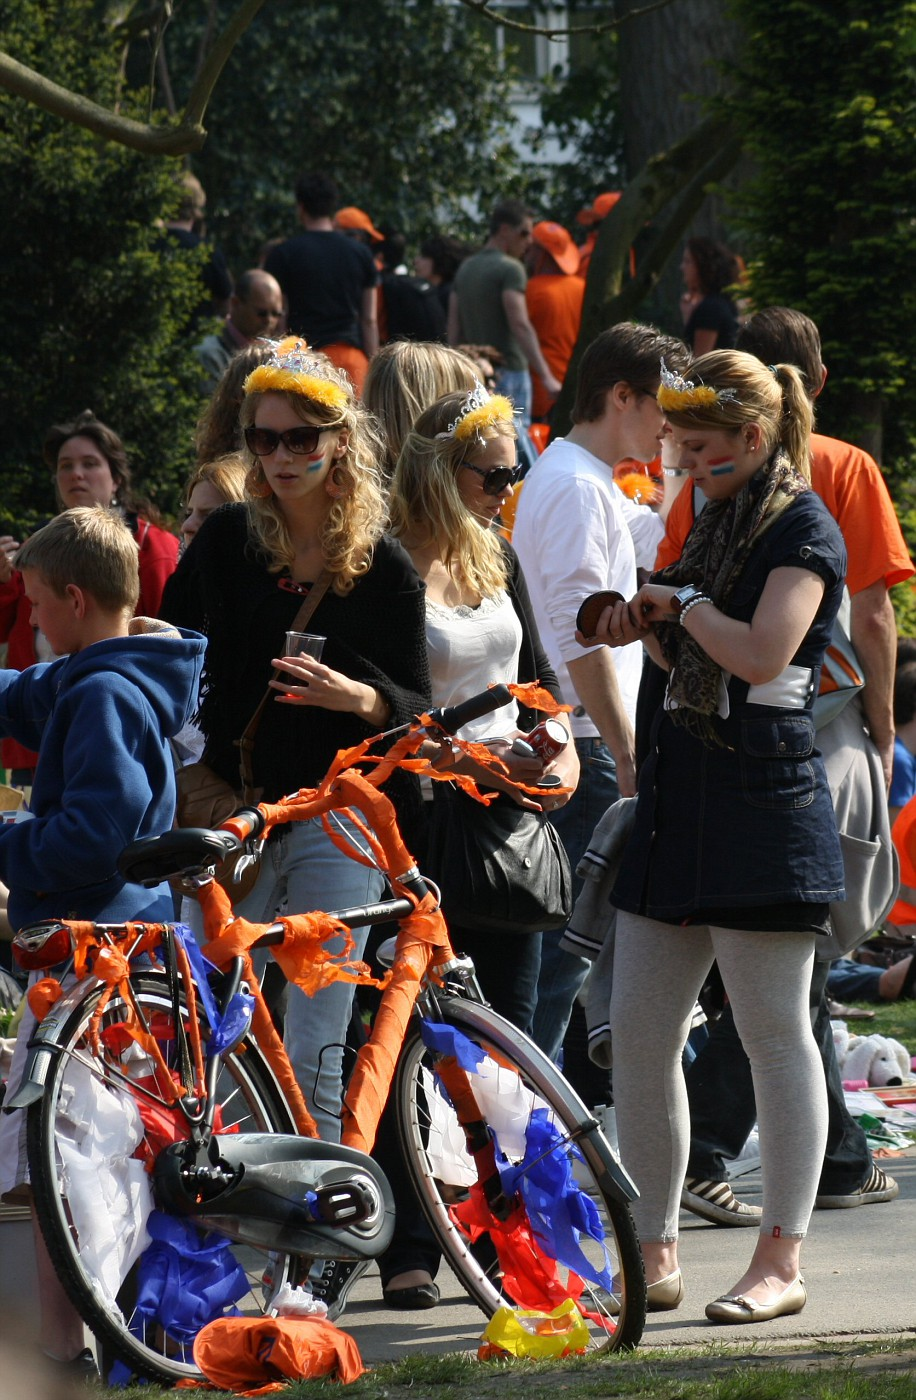 http://images50.fotki.com/v399/photos/2/243162/7531512/040909QueensDay127-vi.jpg